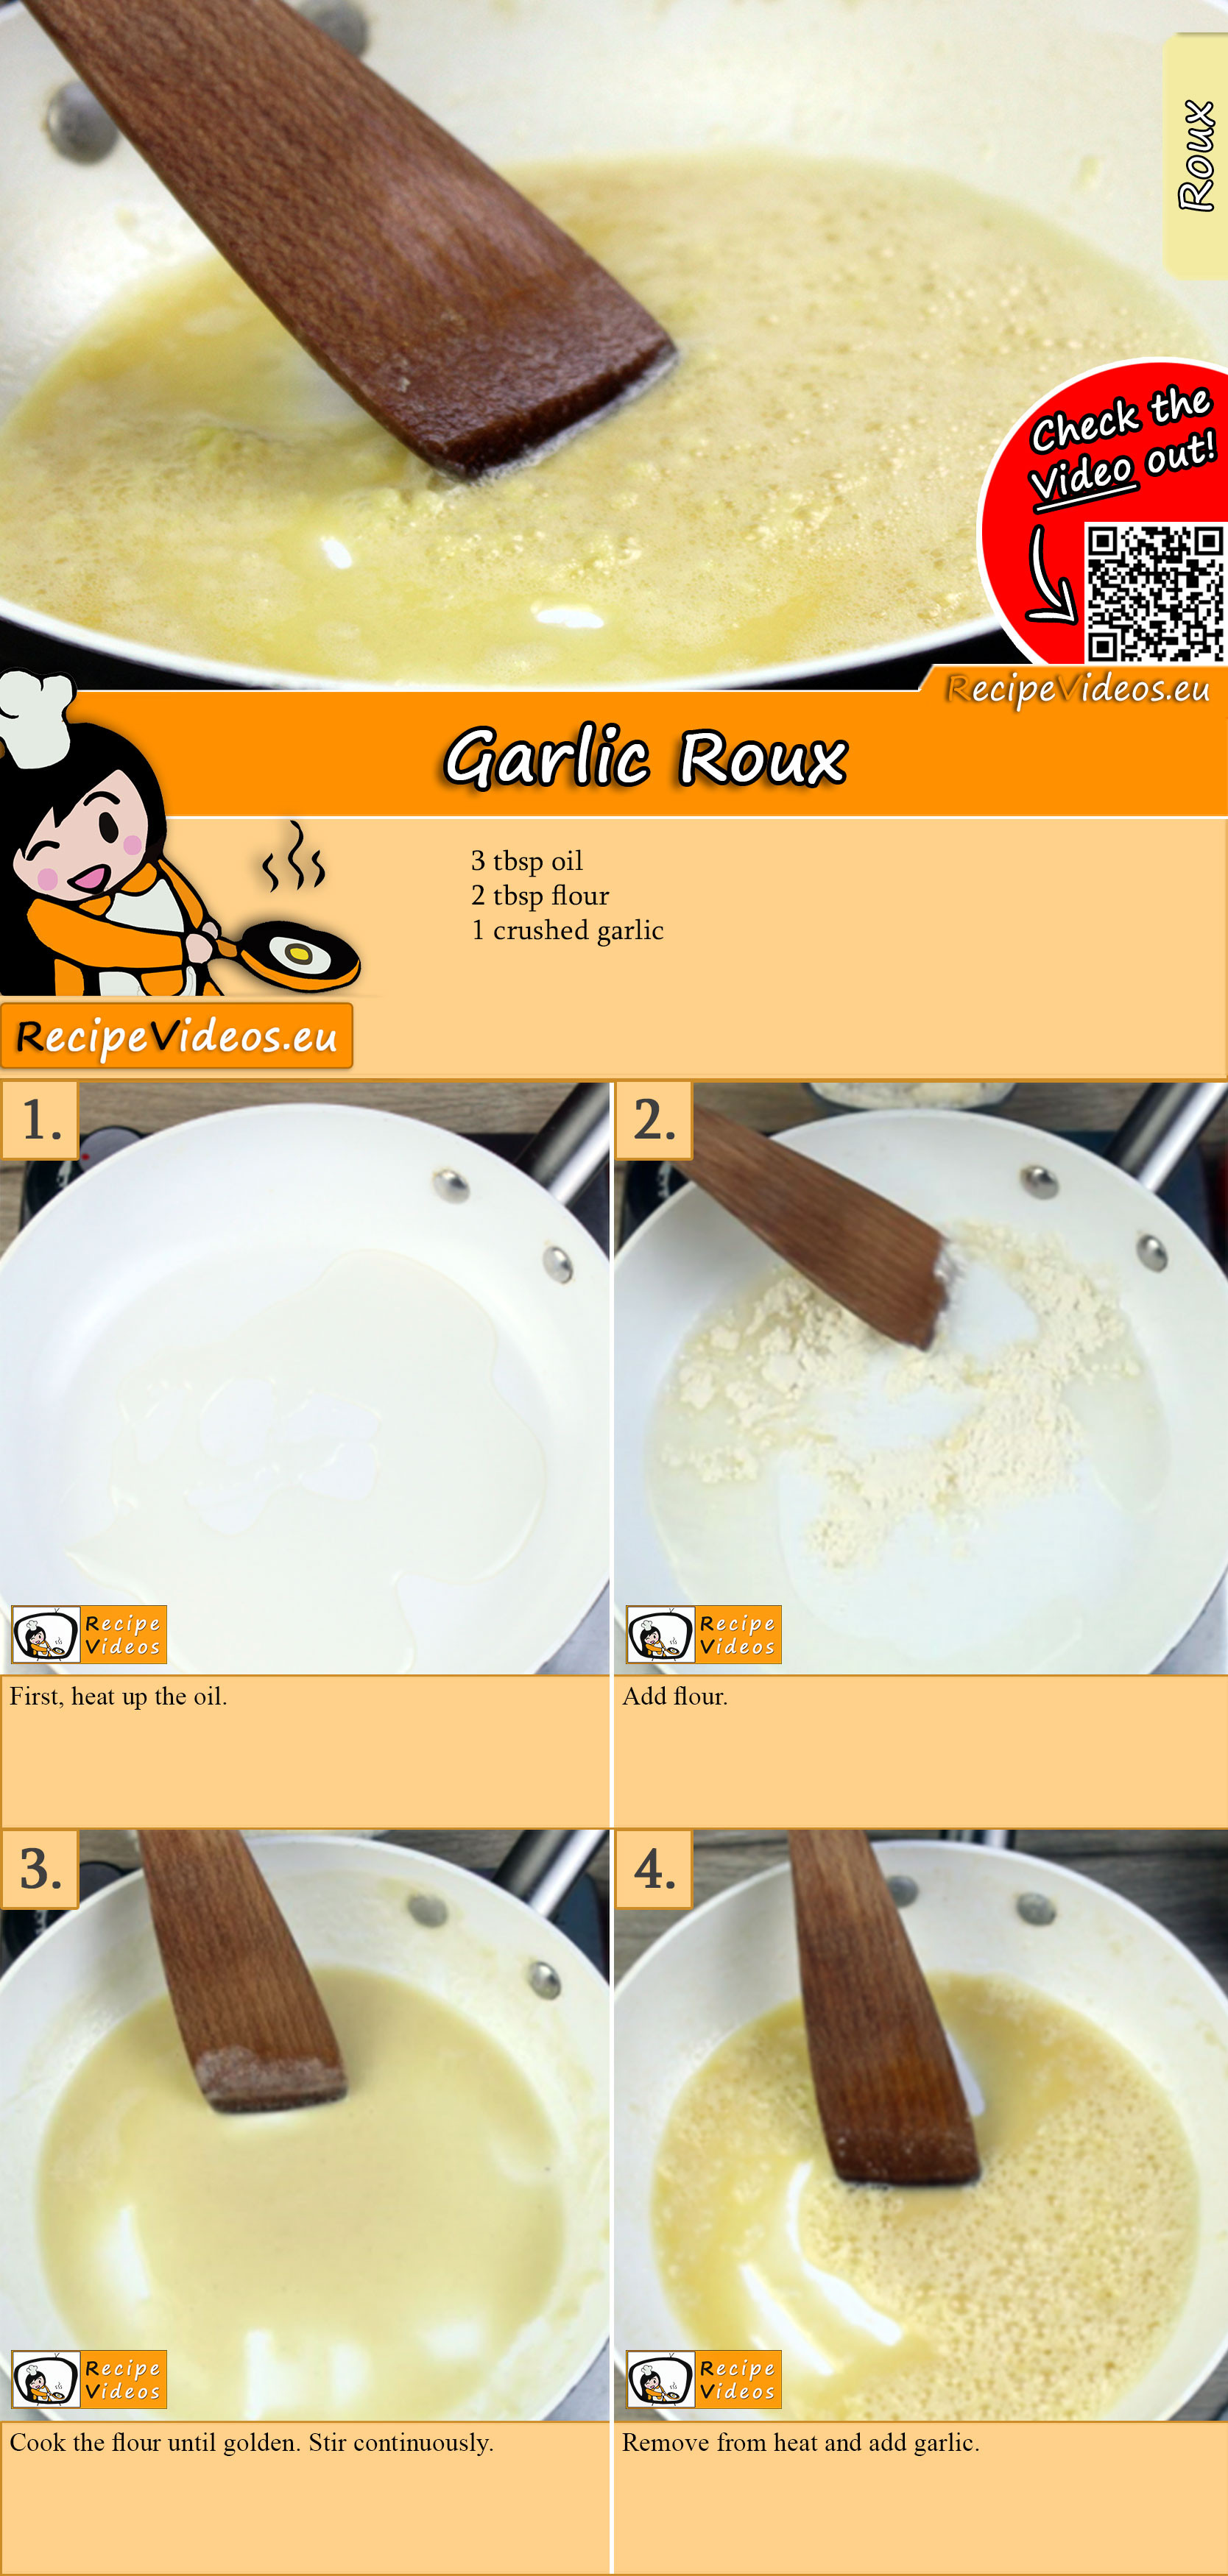 Garlic Roux recipe with video